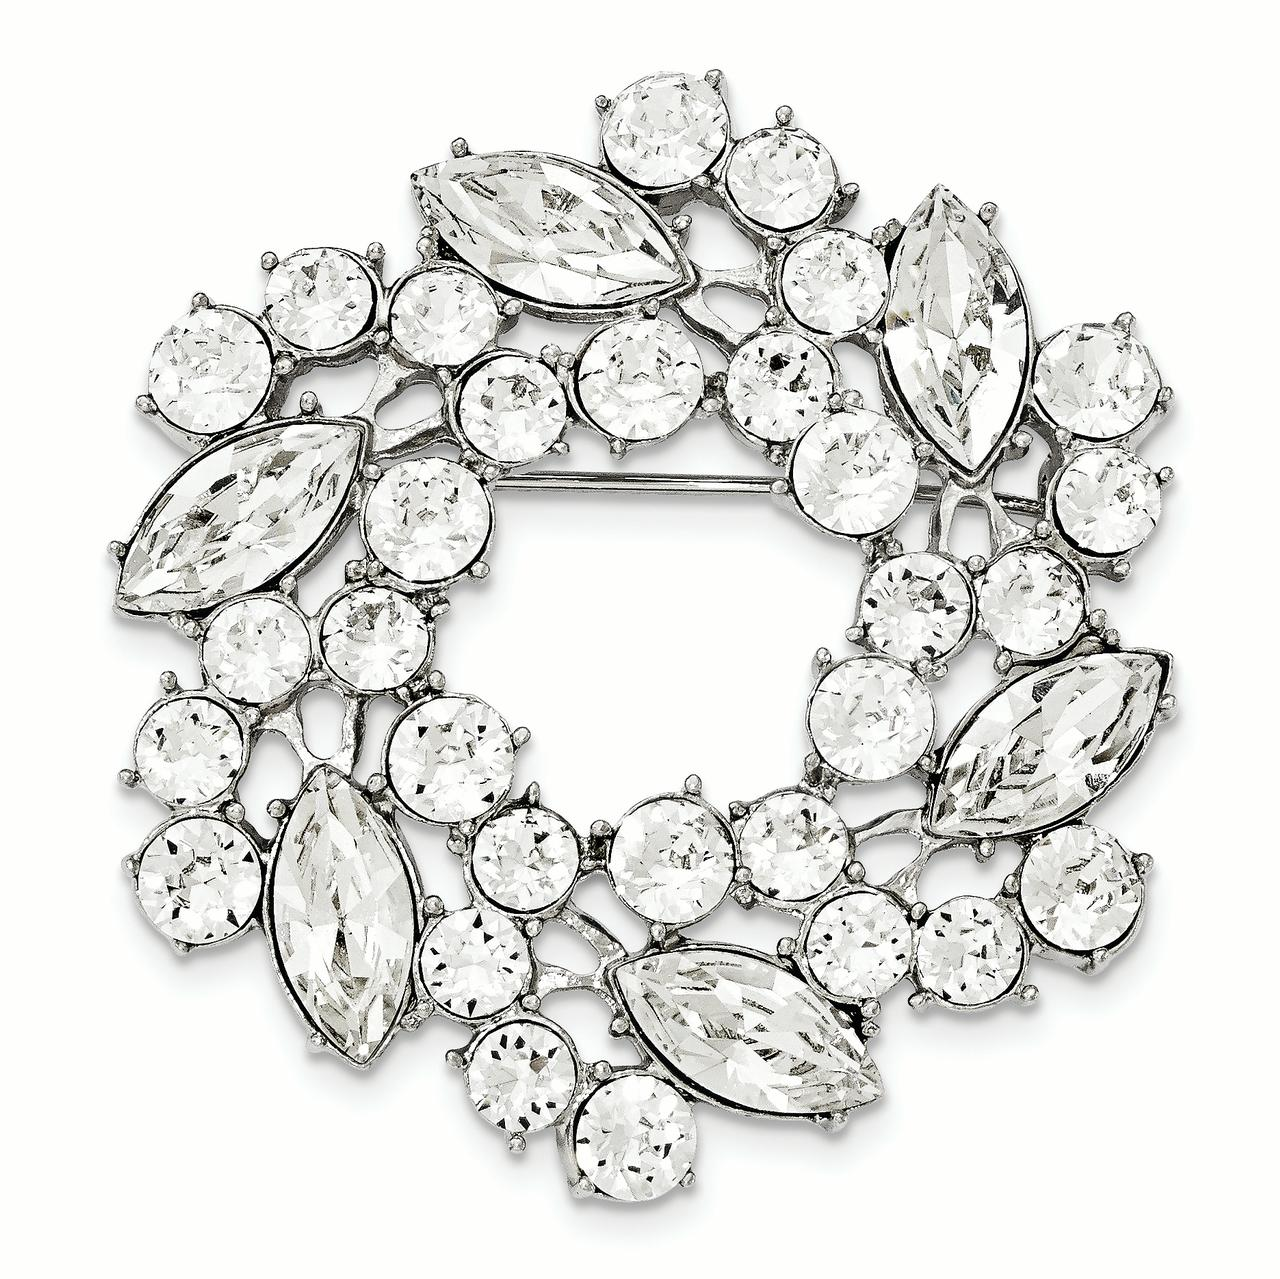 Silver-tone White Crystal Wreath Brooch by Best Price Product